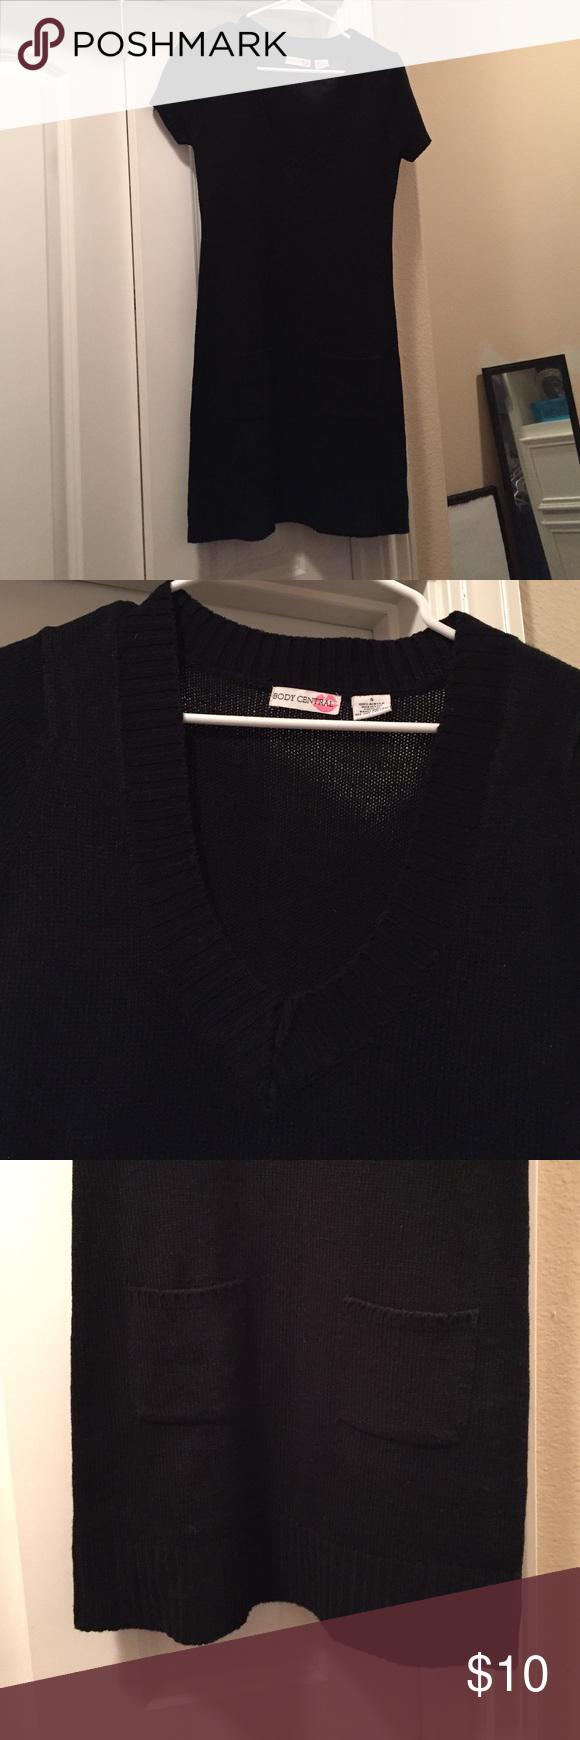 Sweater dress | Black sweater dress, Body central and Solid black